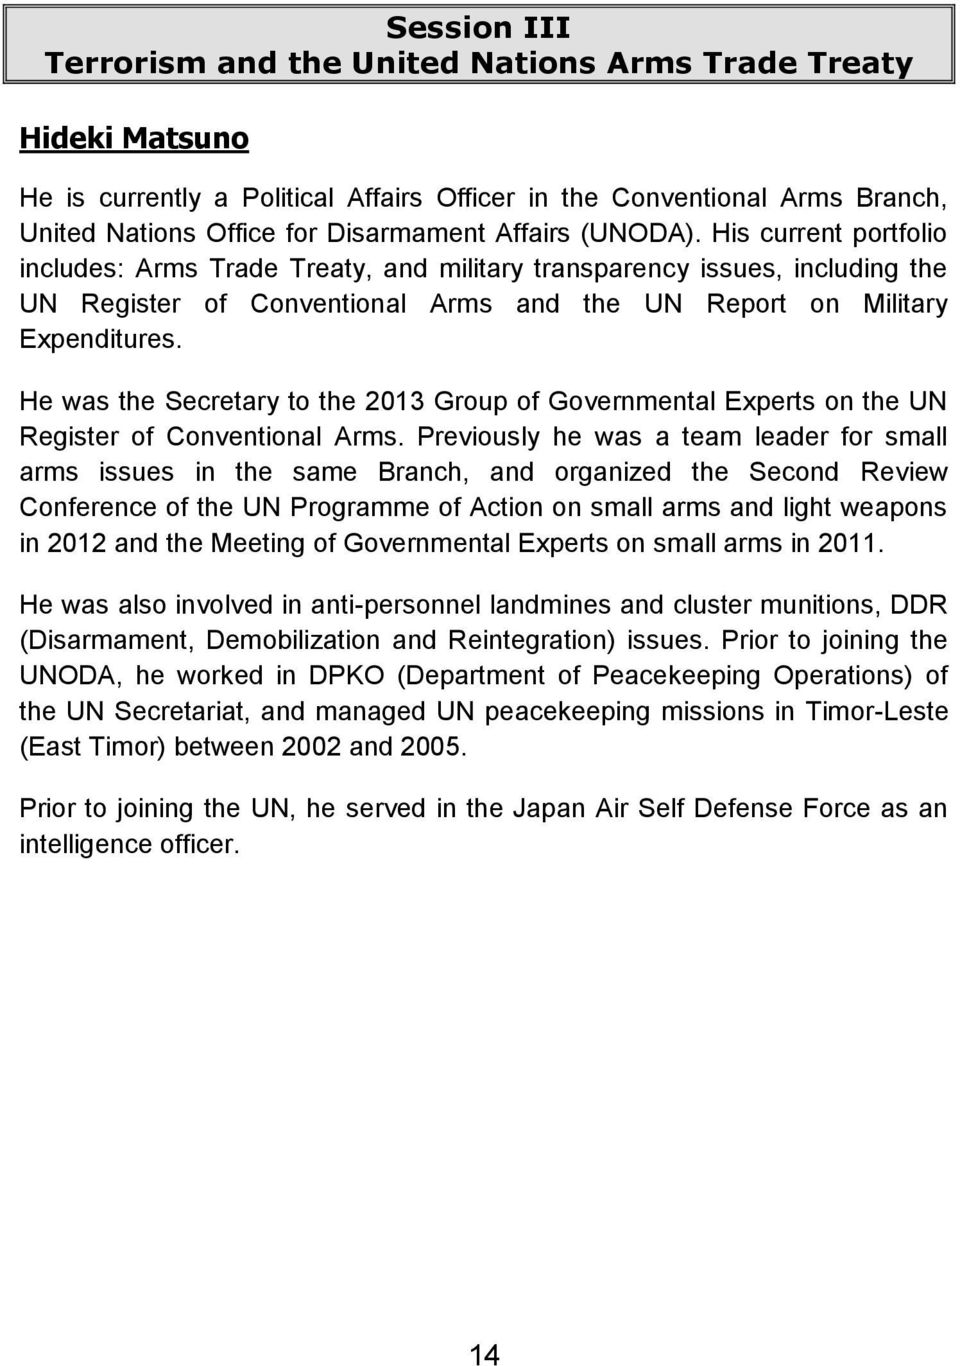 He was the Secretary to the 2013 Group of Governmental Experts on the UN Register of Conventional Arms.